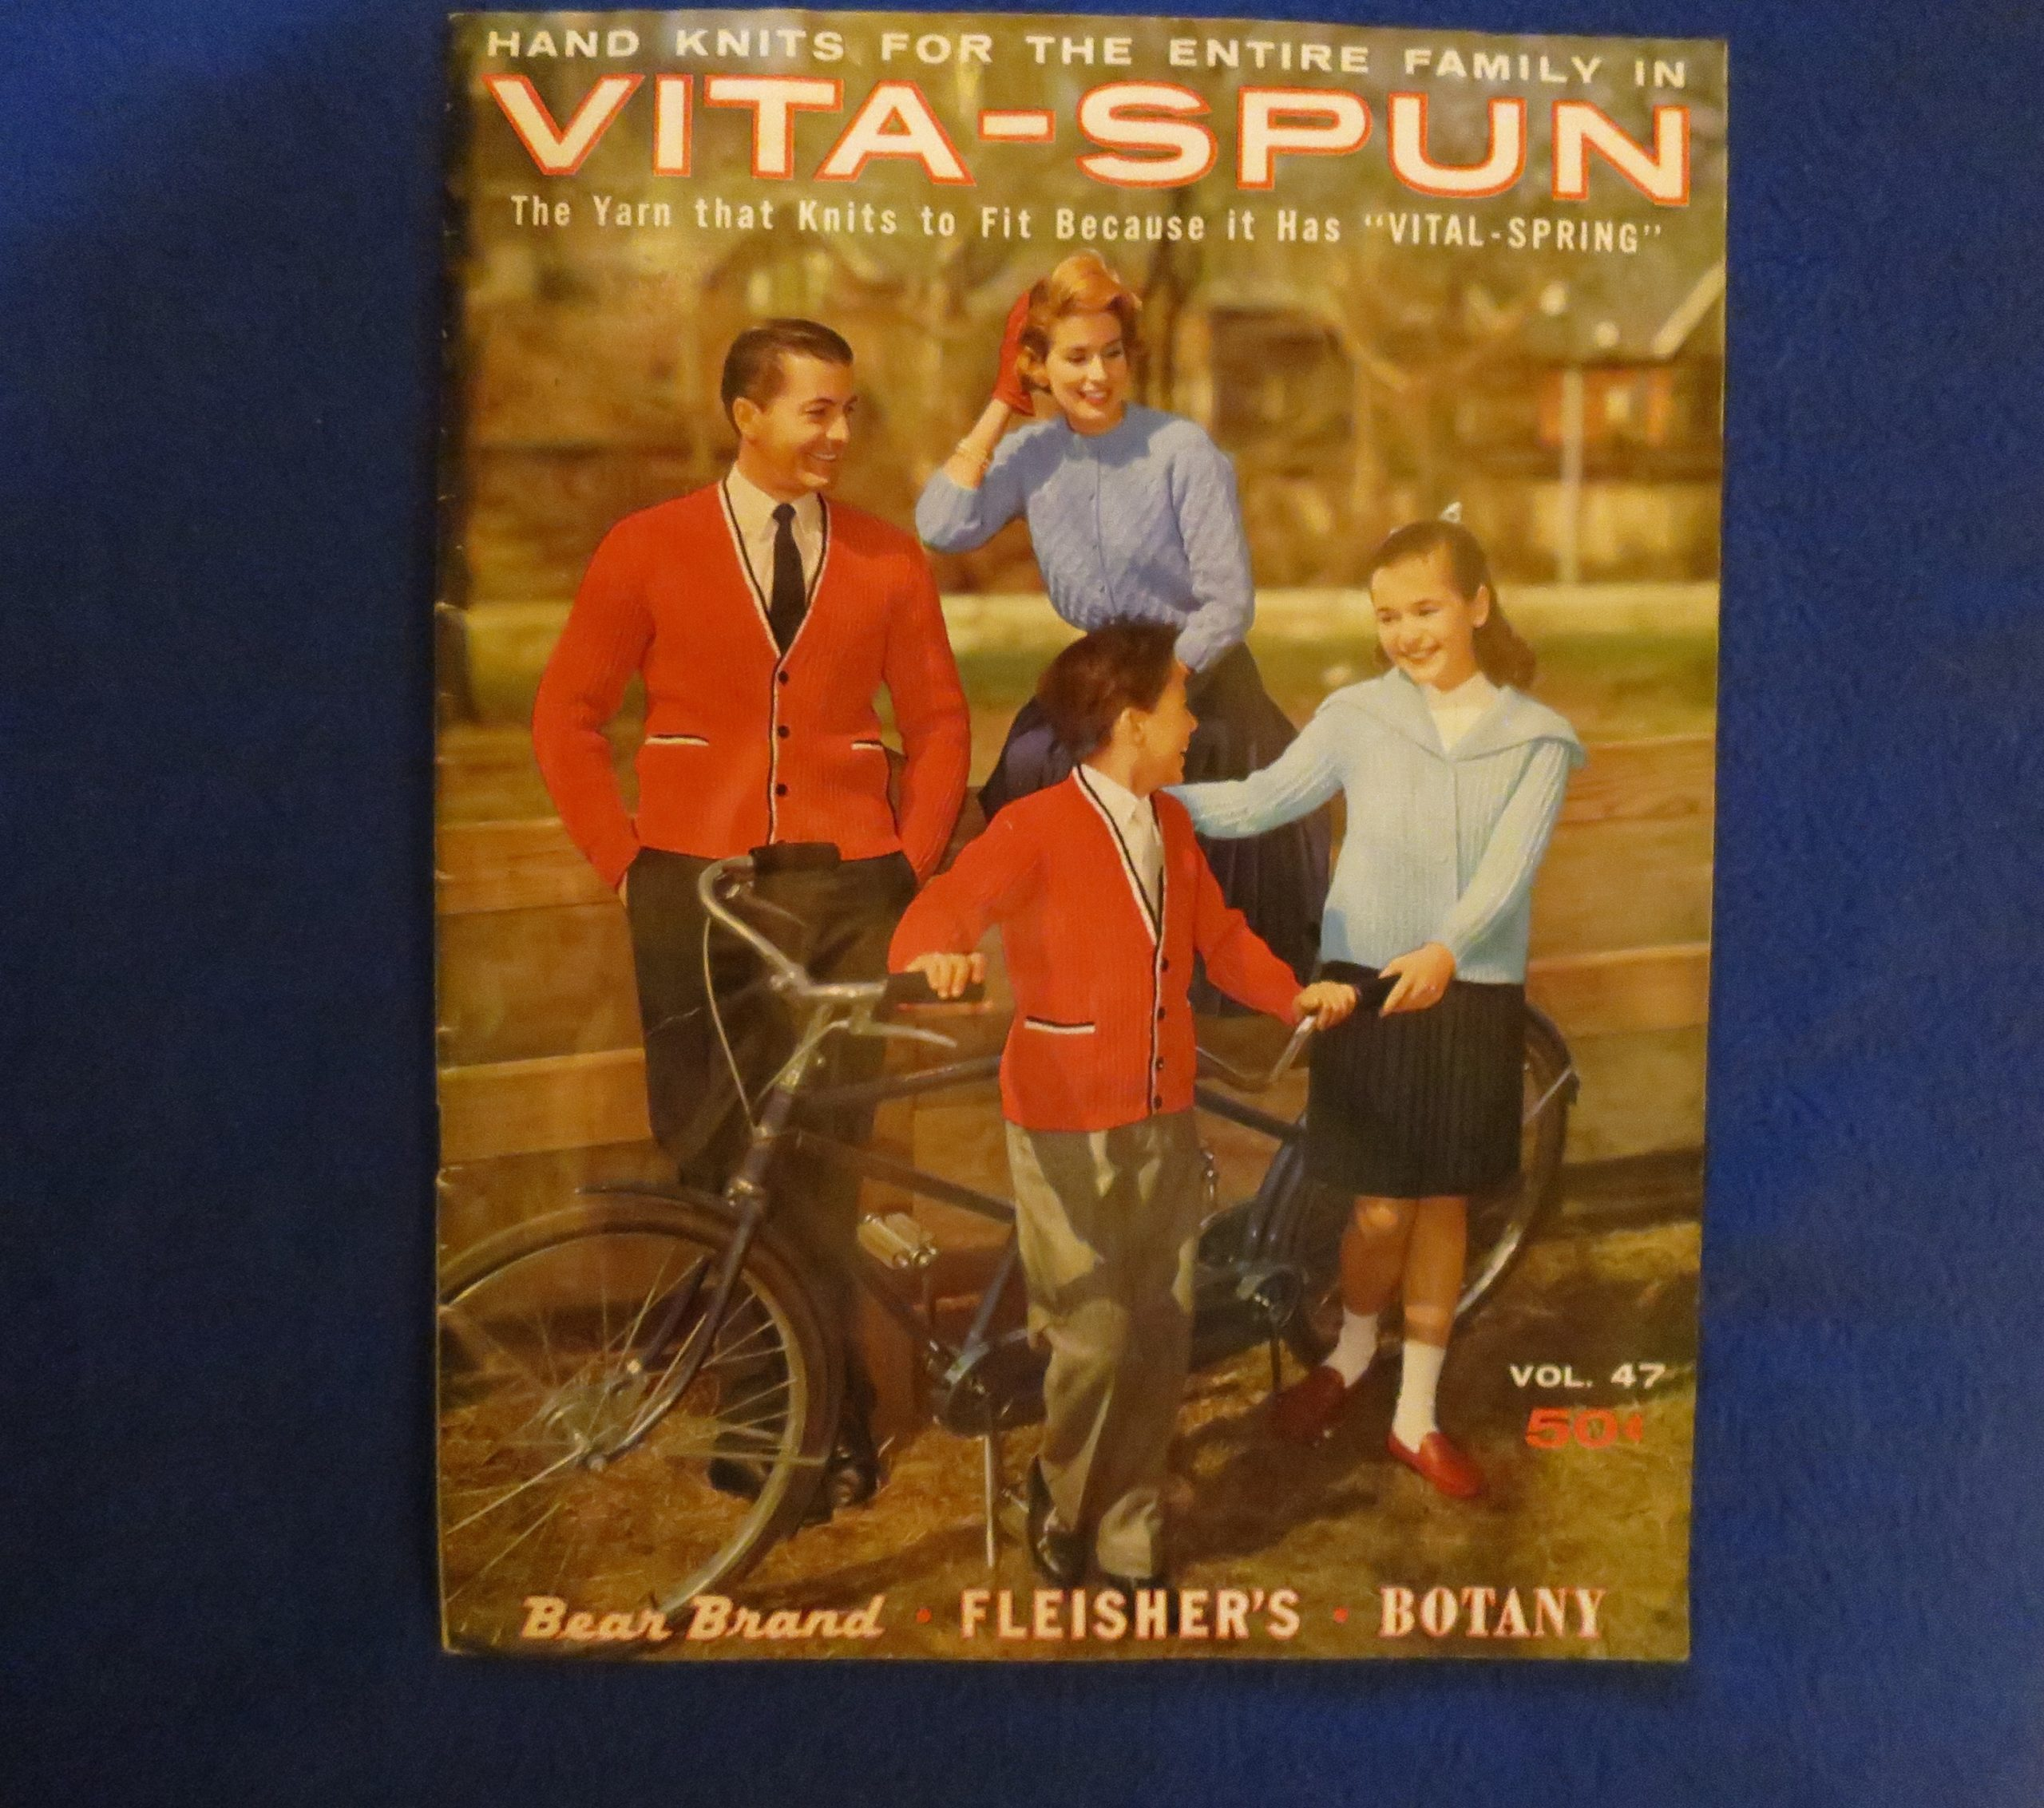 Knitting booklet for Vita-Spun yarn